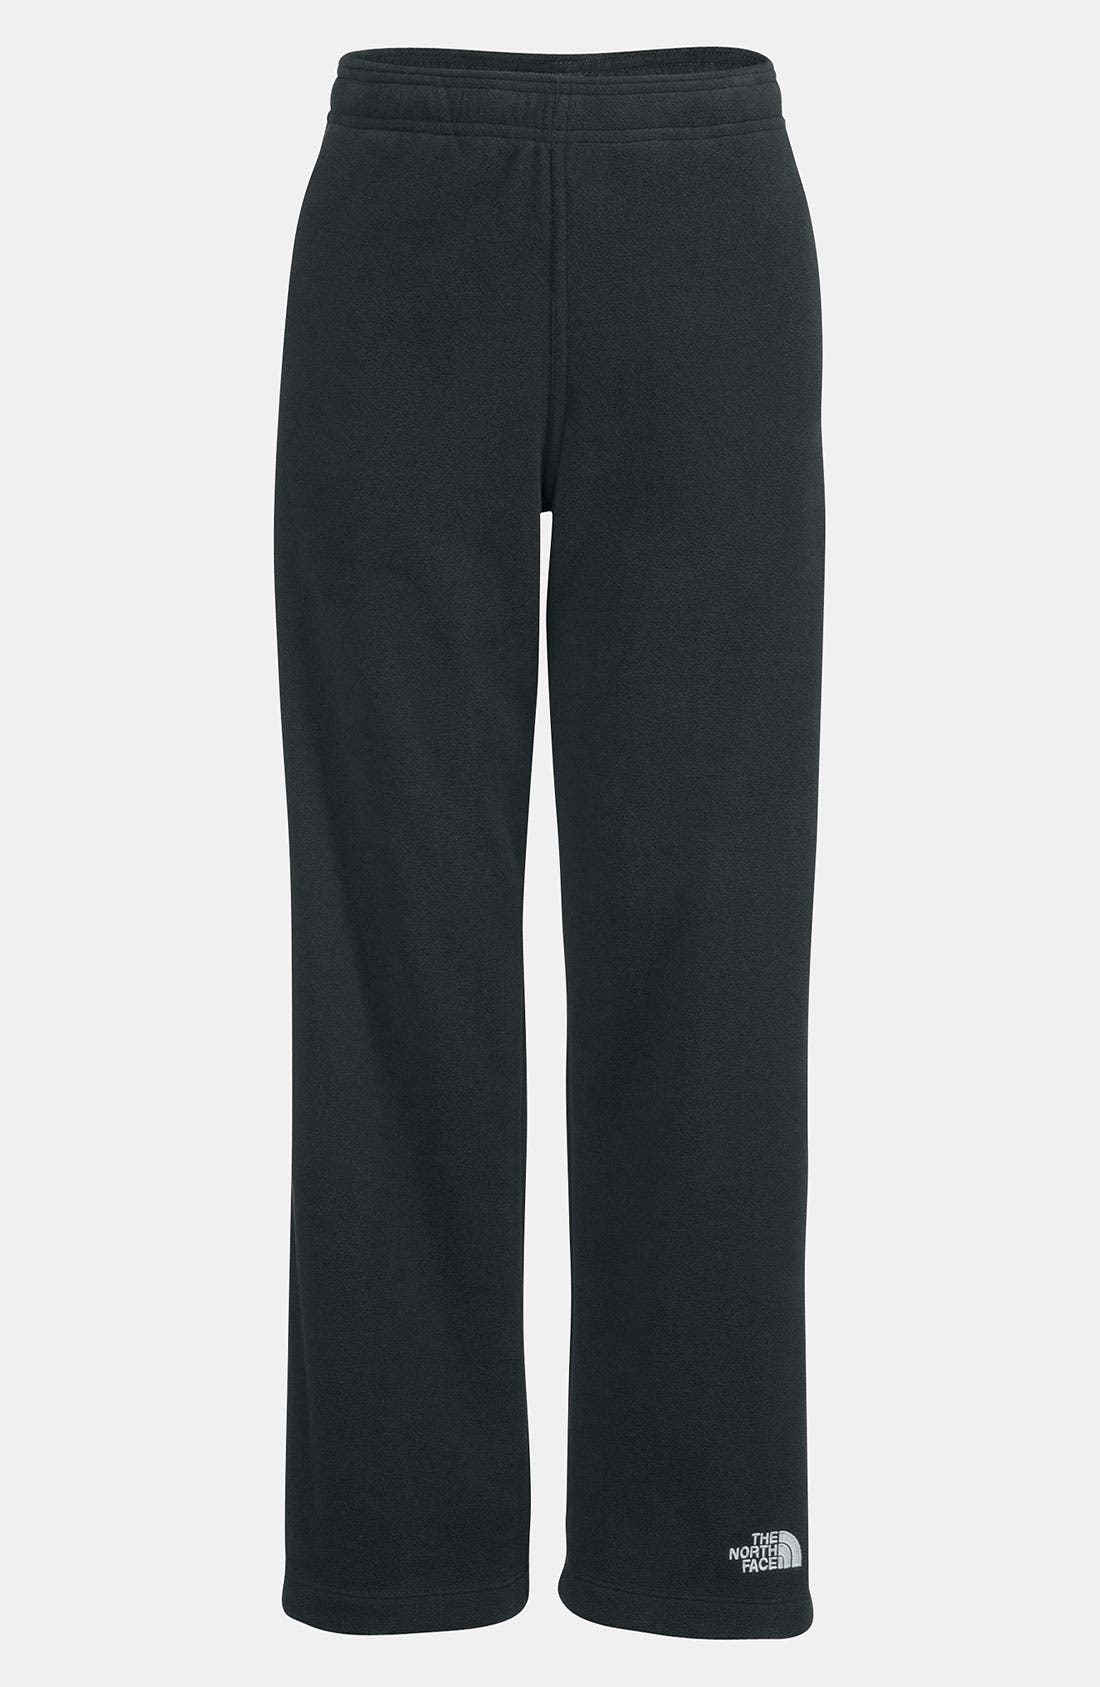 Alternate Image 1 Selected - The North Face 'Glacier' Pants (Little Boys)